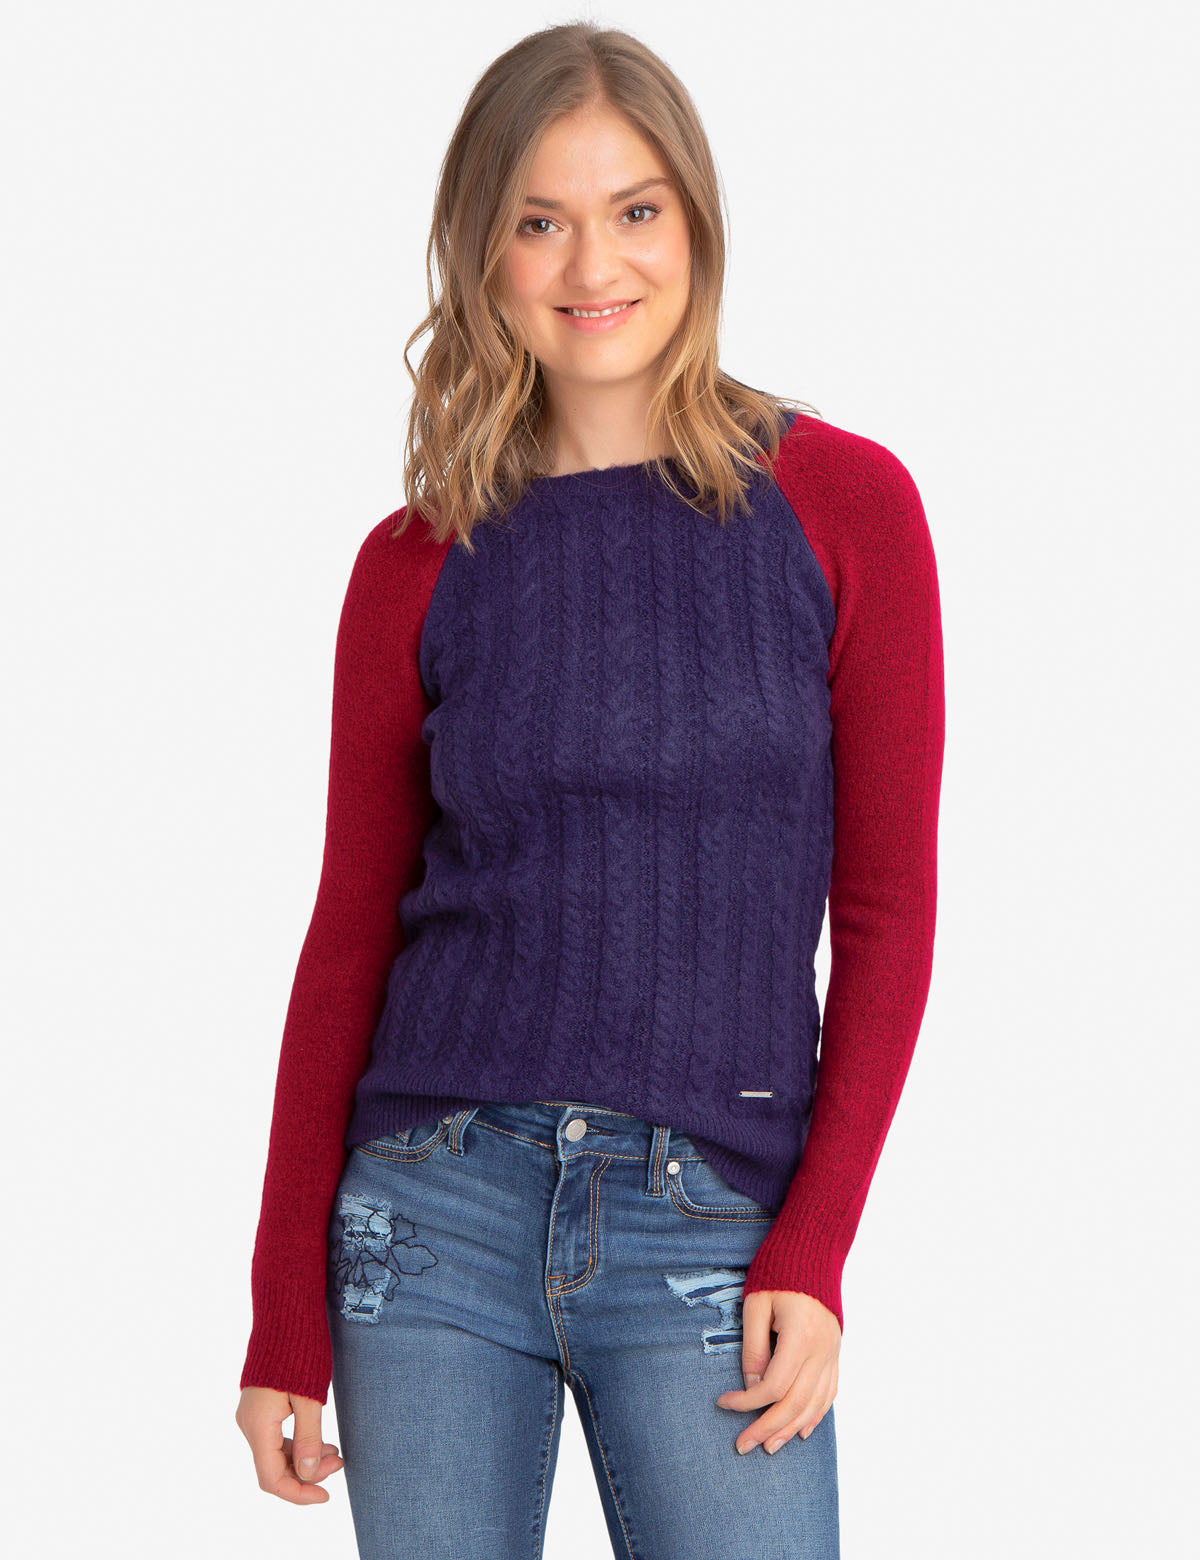 MIXED STITCH SWEATER - U.S. Polo Assn.